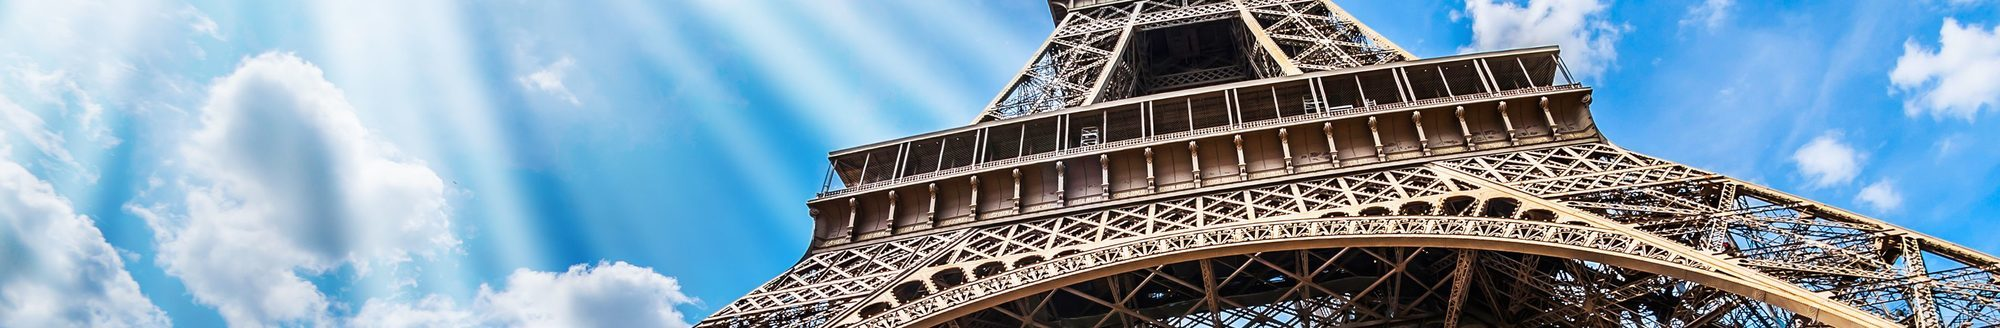 Eiffel Tower - Skip the Line Tickets